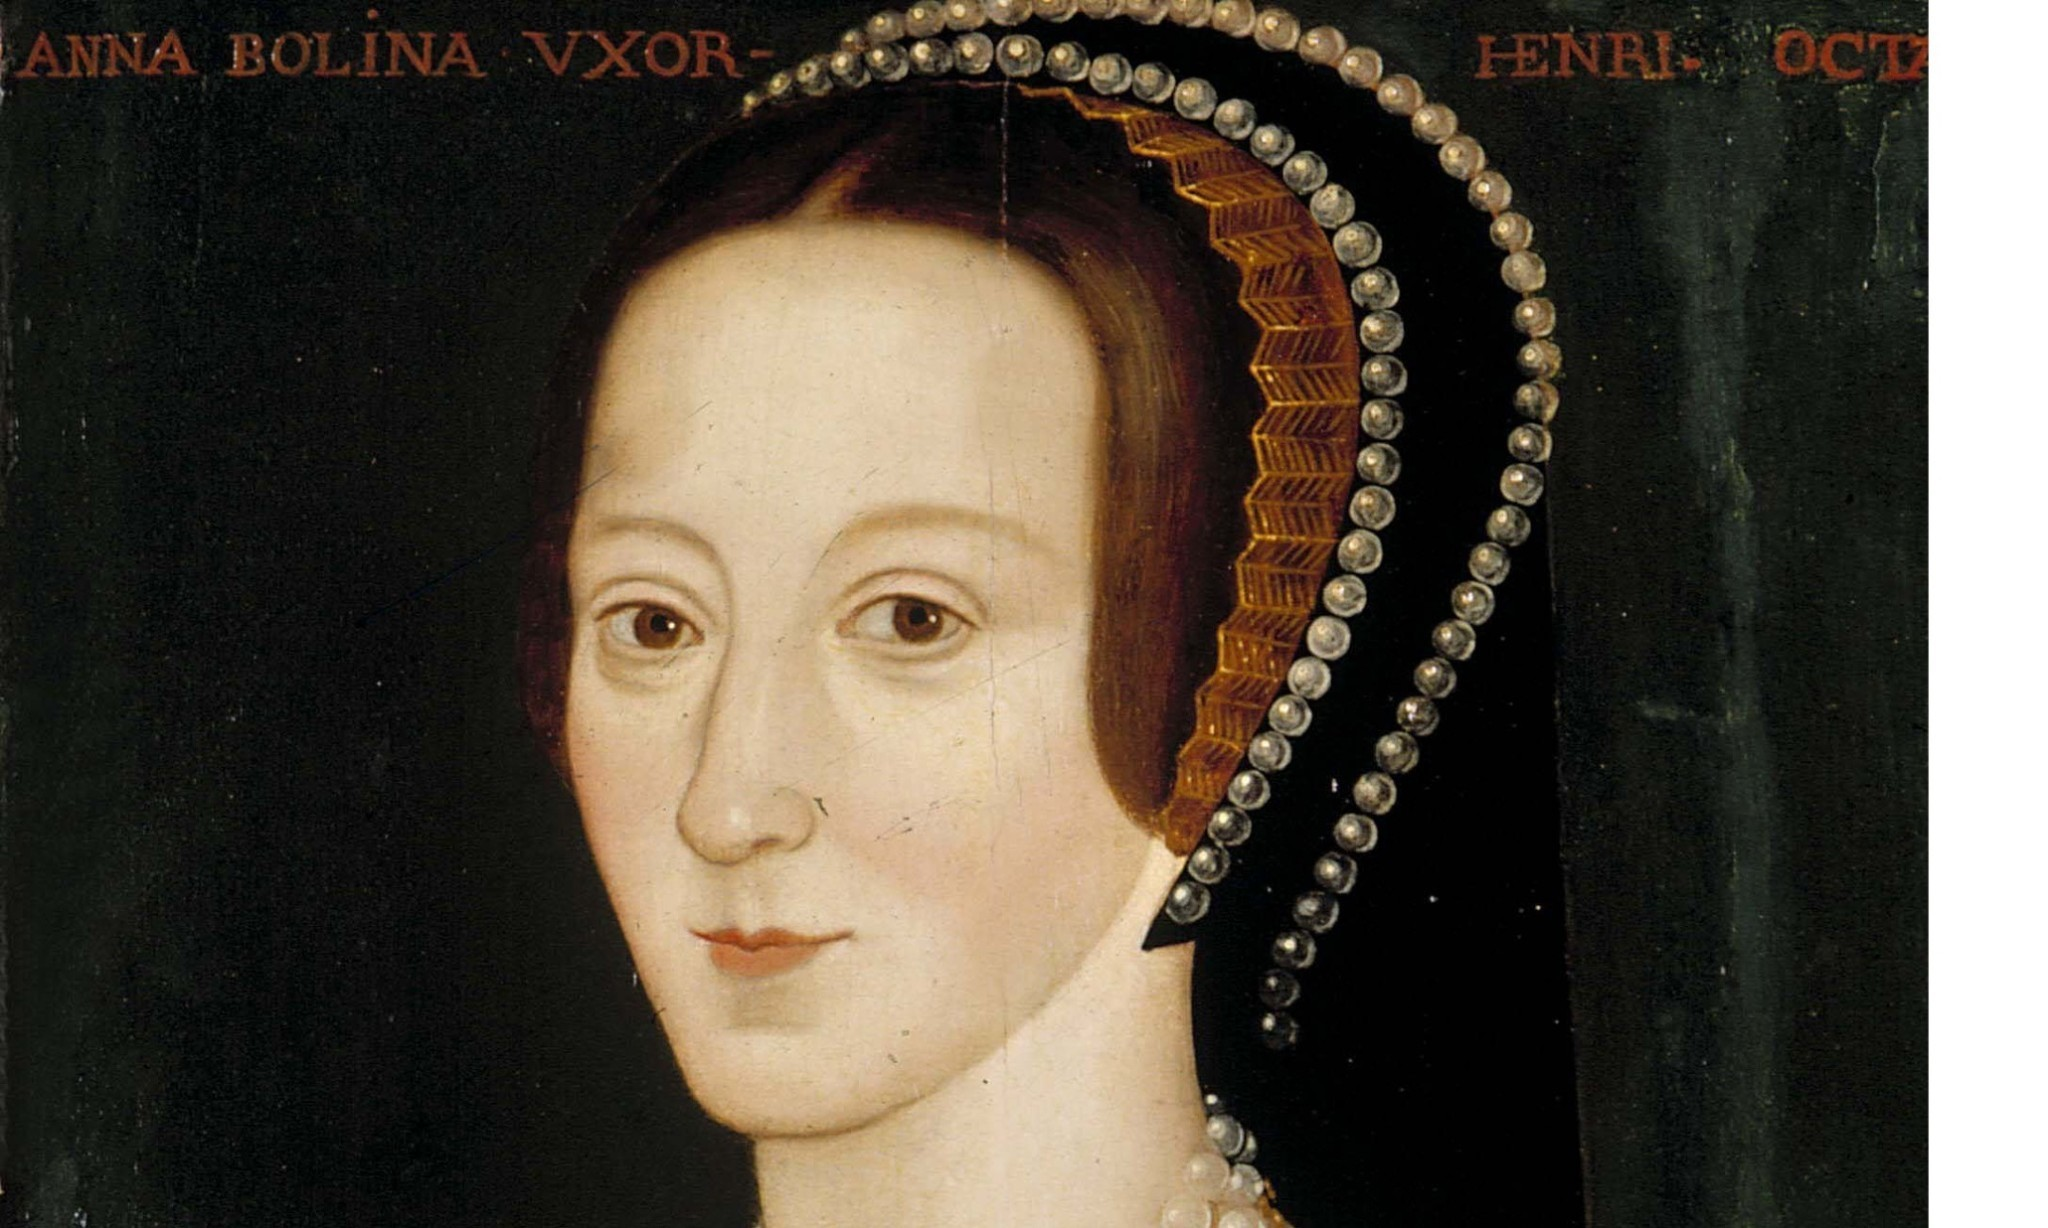 Possible Anne Boleyn portrait found using facial recognition software